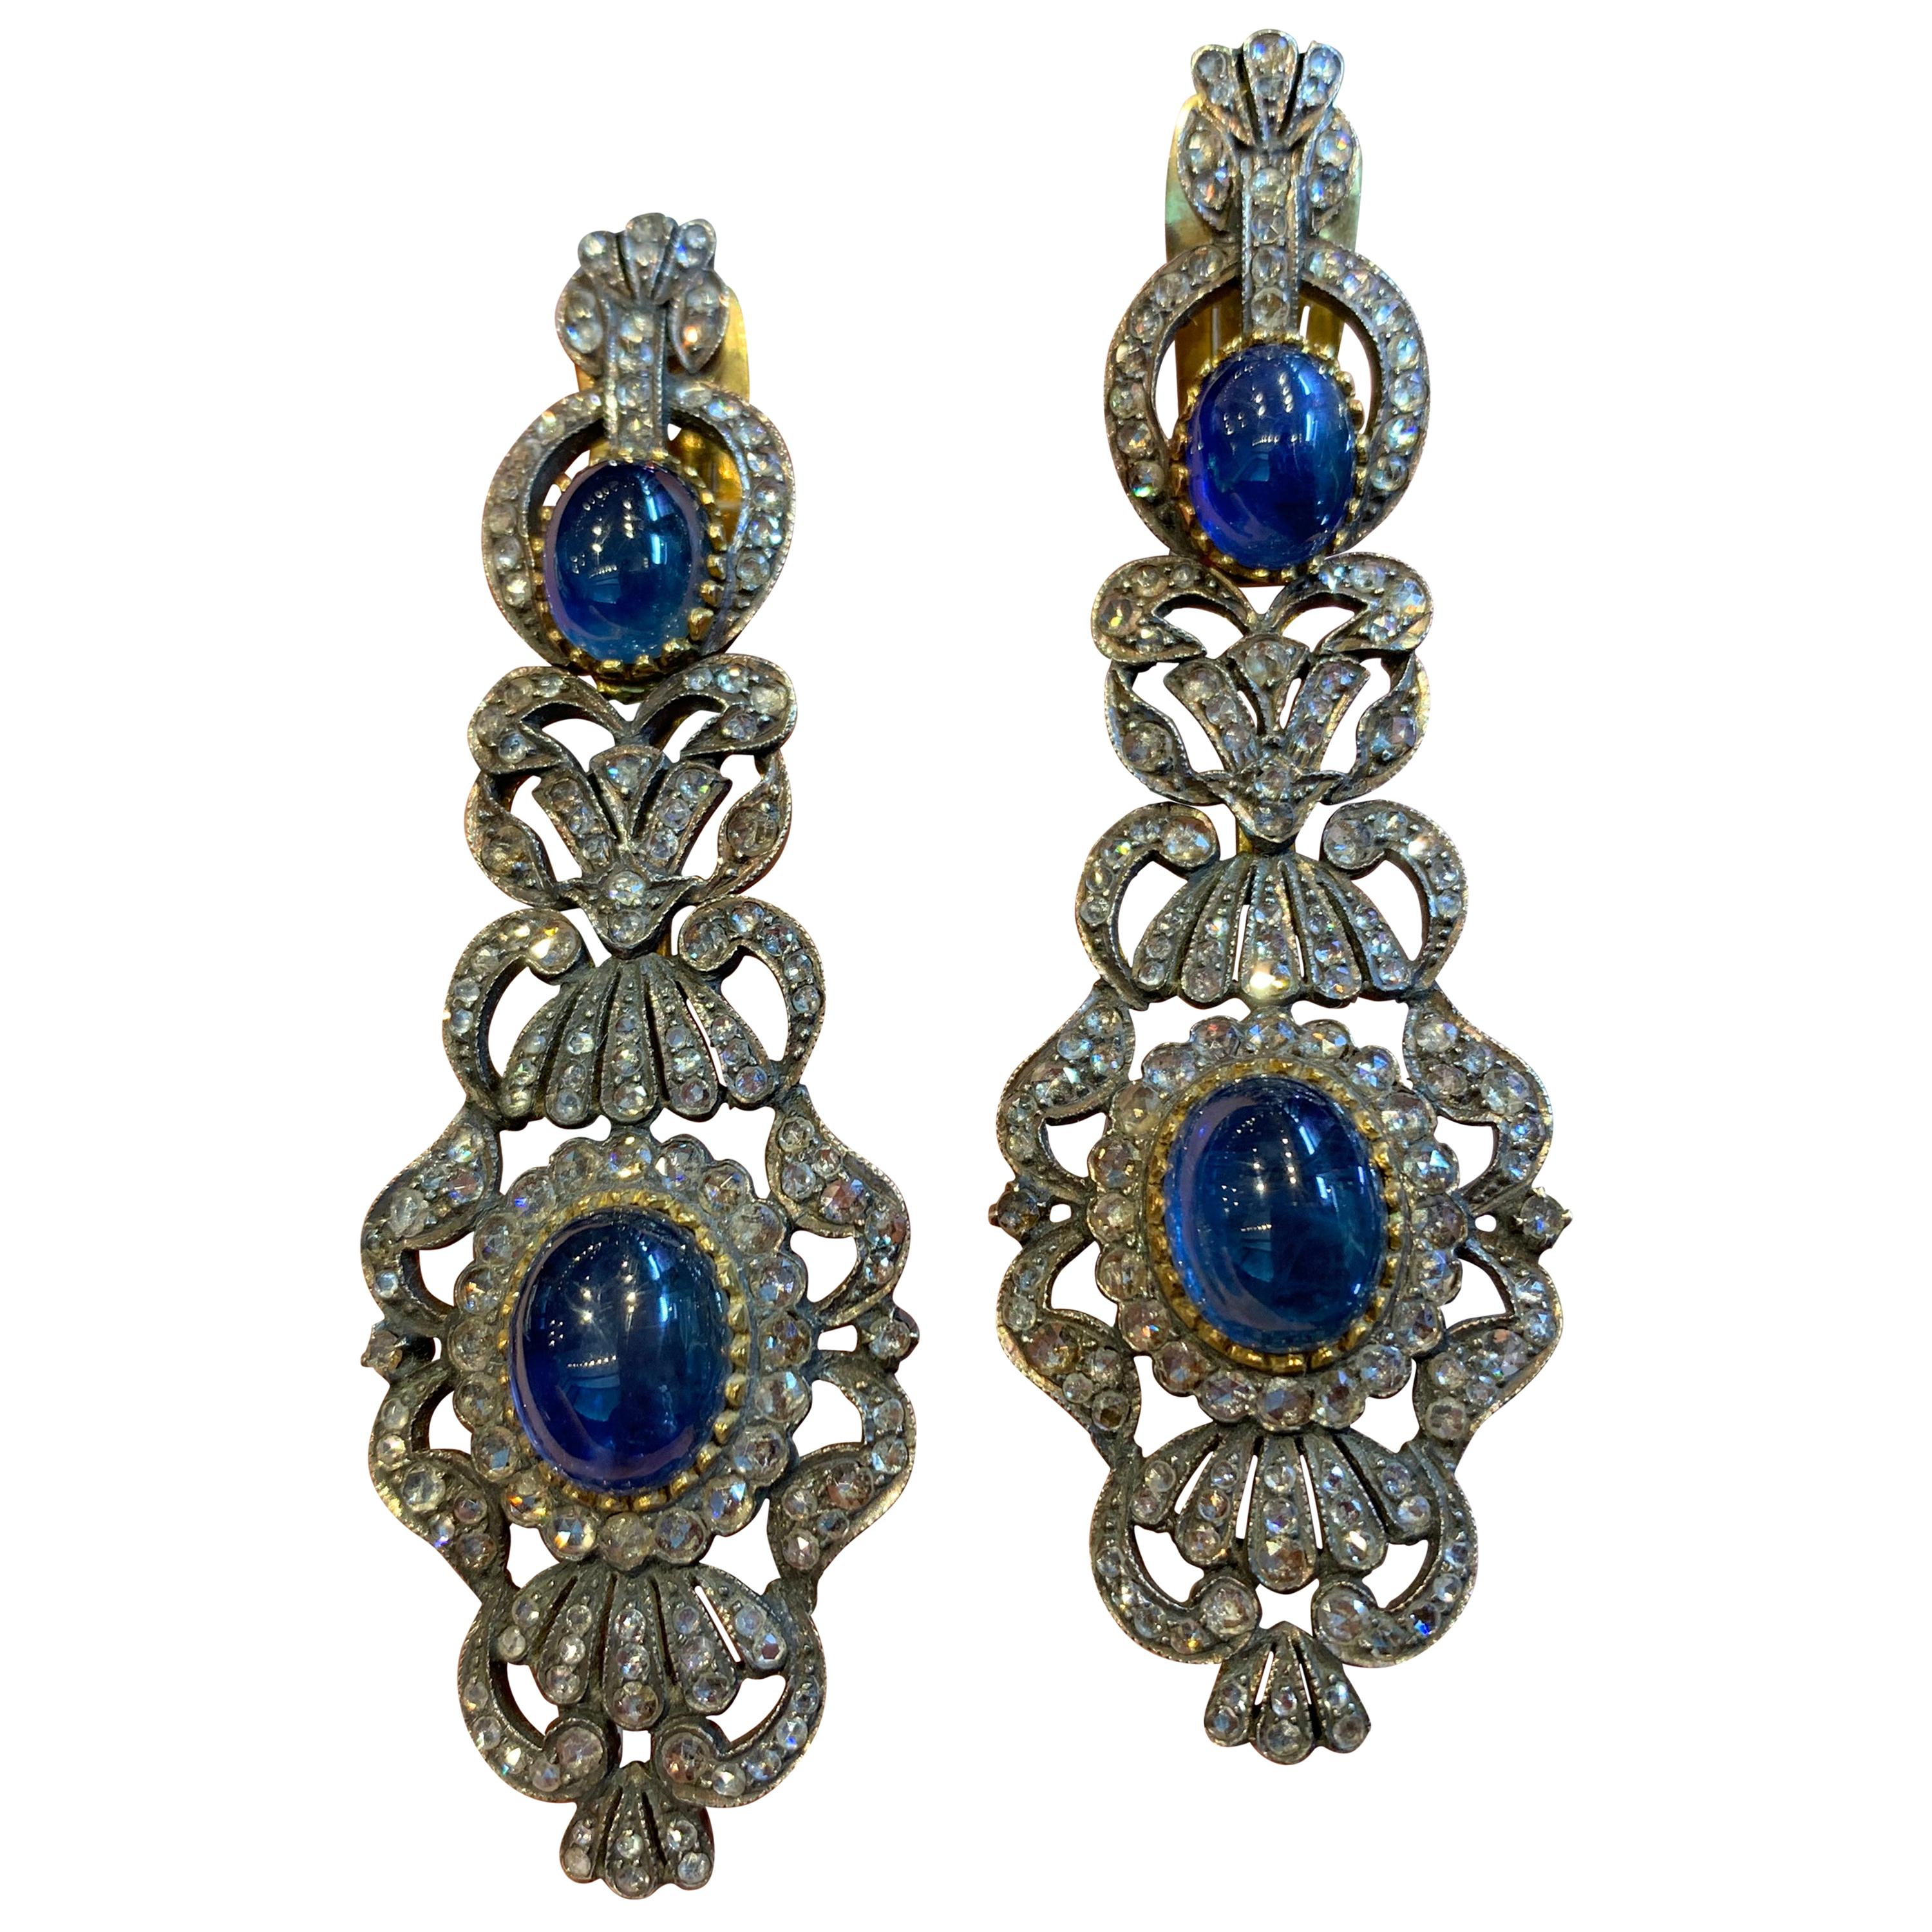 Antique Cabochon Sapphire and Diamond Earrings